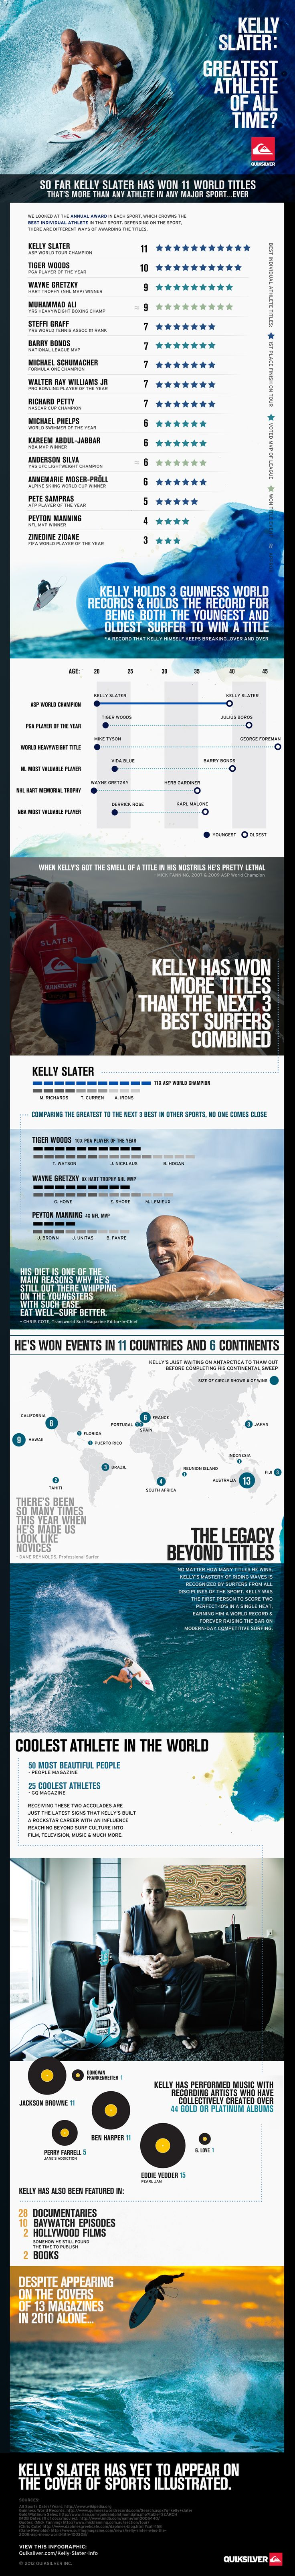 Kelly Slater - greatest of all time?Surf Infographic, Greatest Athletic, Beach Waves, Sports Infographic, Infographic Inspiration, Time Infographic, Kelly Slater, Infographics, Info Graphics